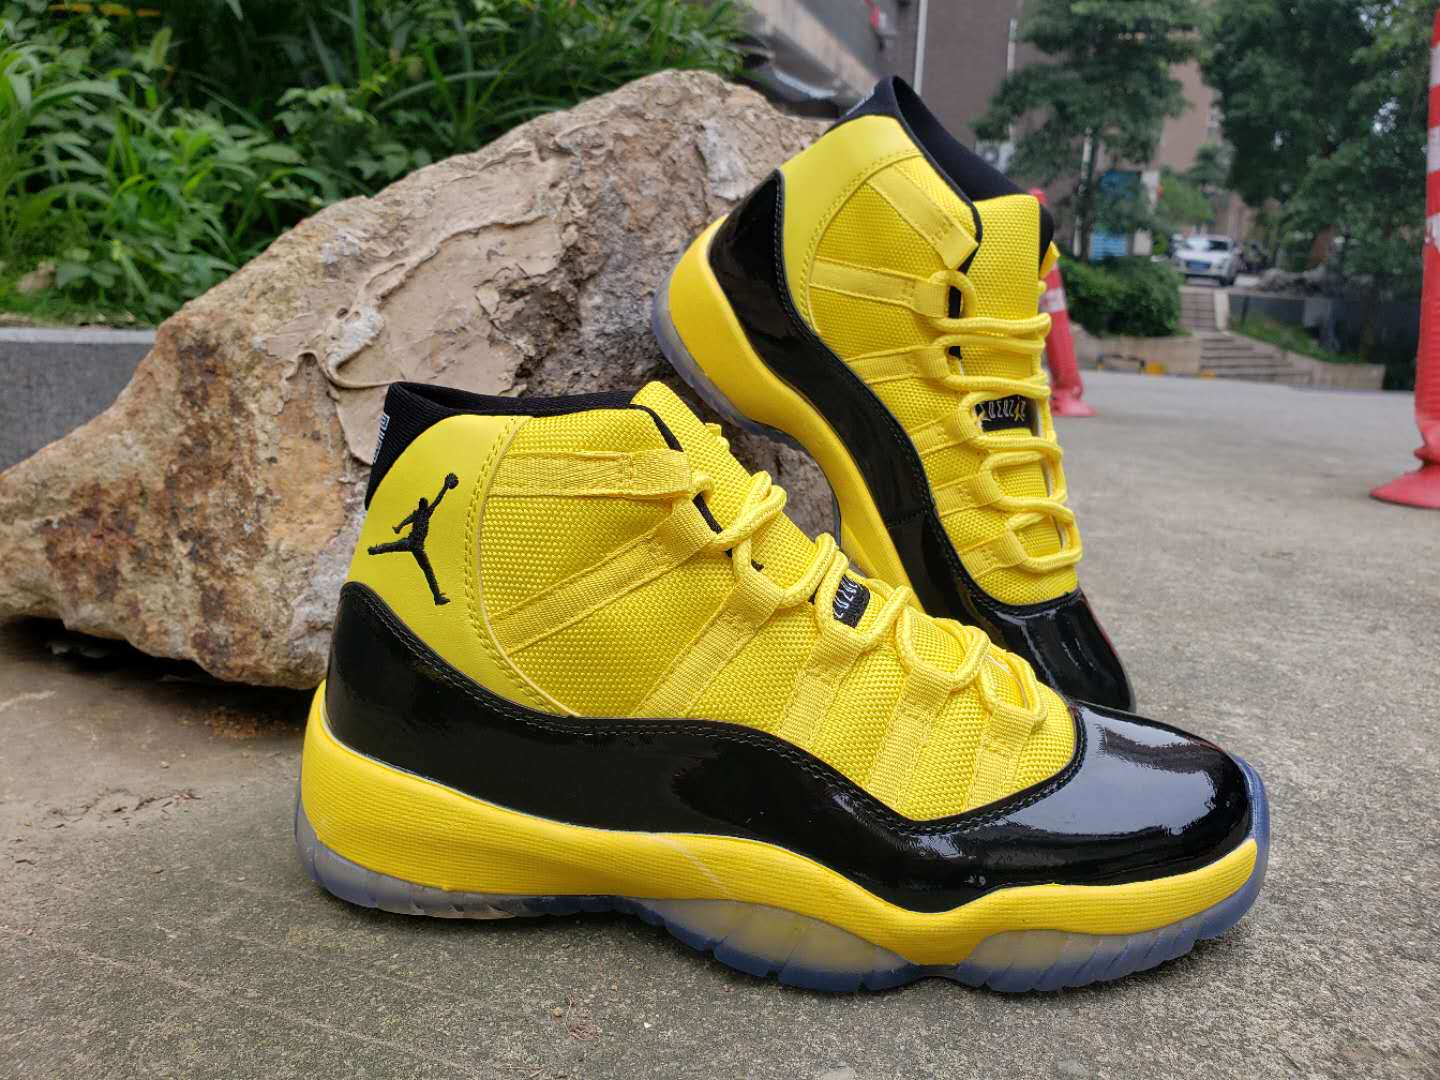 2019 Men Jordan 11 Bumblebee Yellow Black Shoes